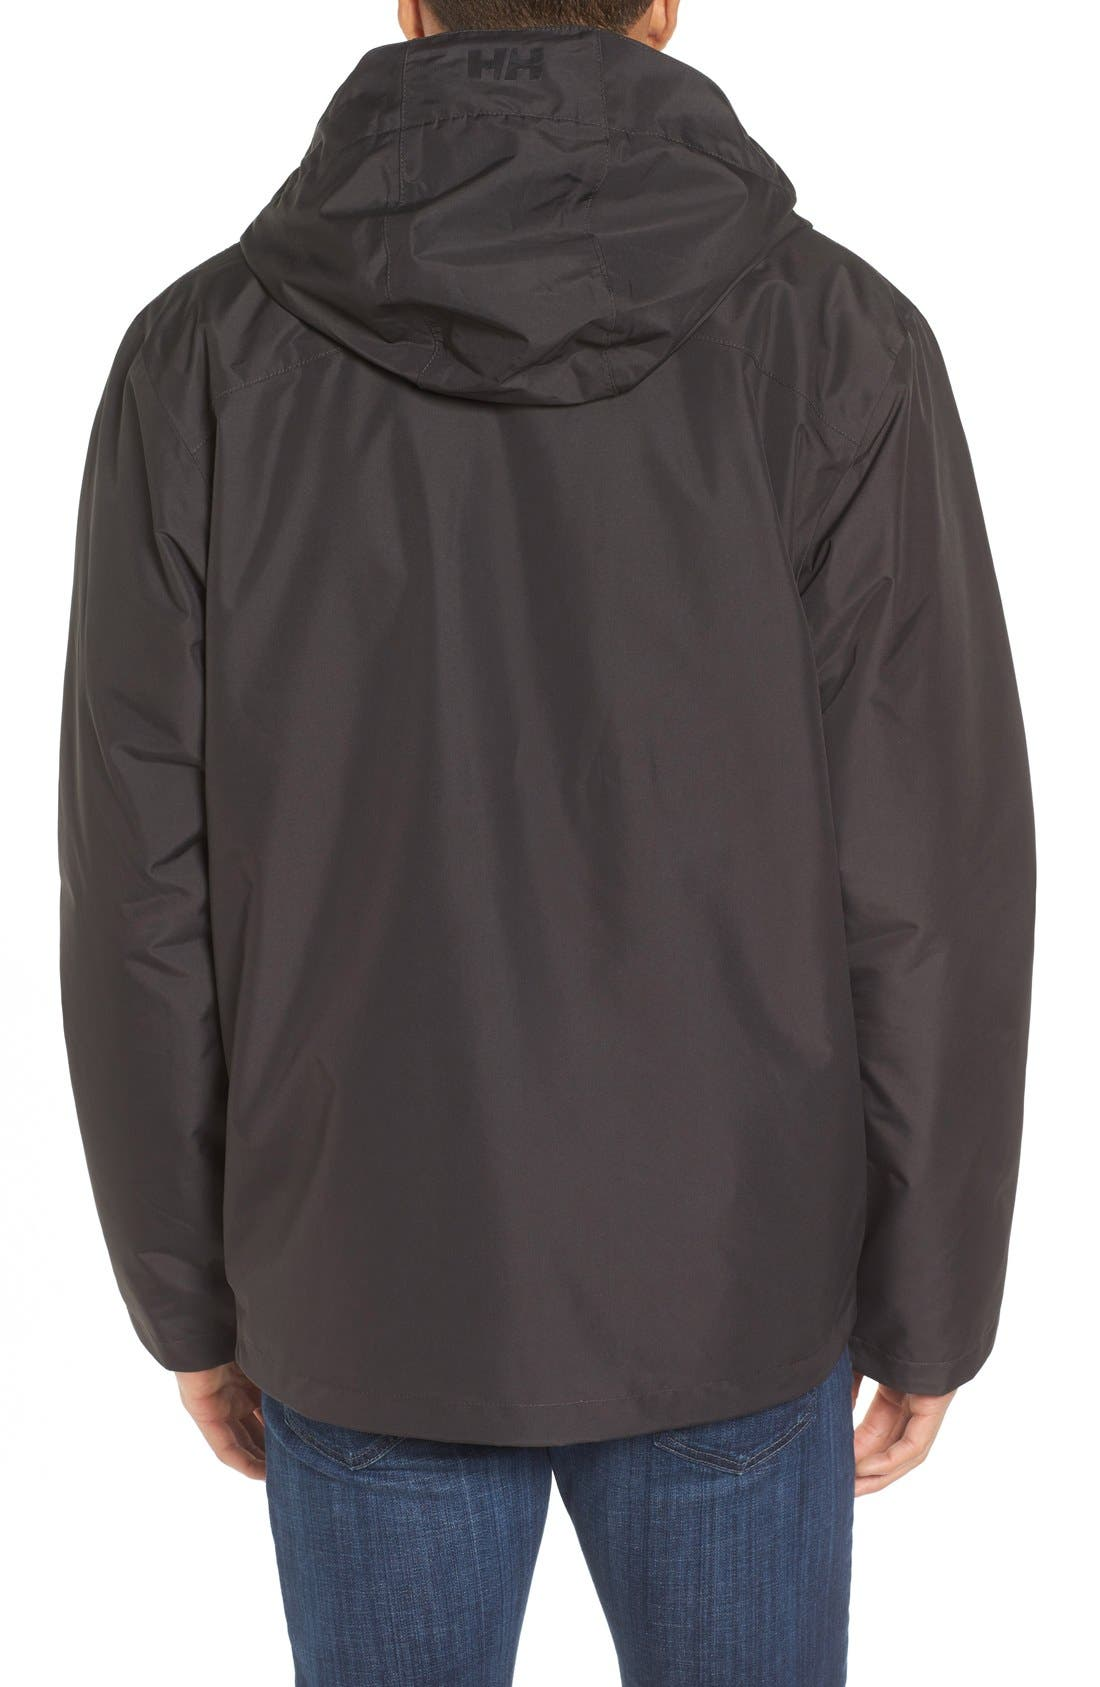 Squamish 3-in-1 Water Repellent Hooded Jacket,                             Alternate thumbnail 2, color,                             Ebony